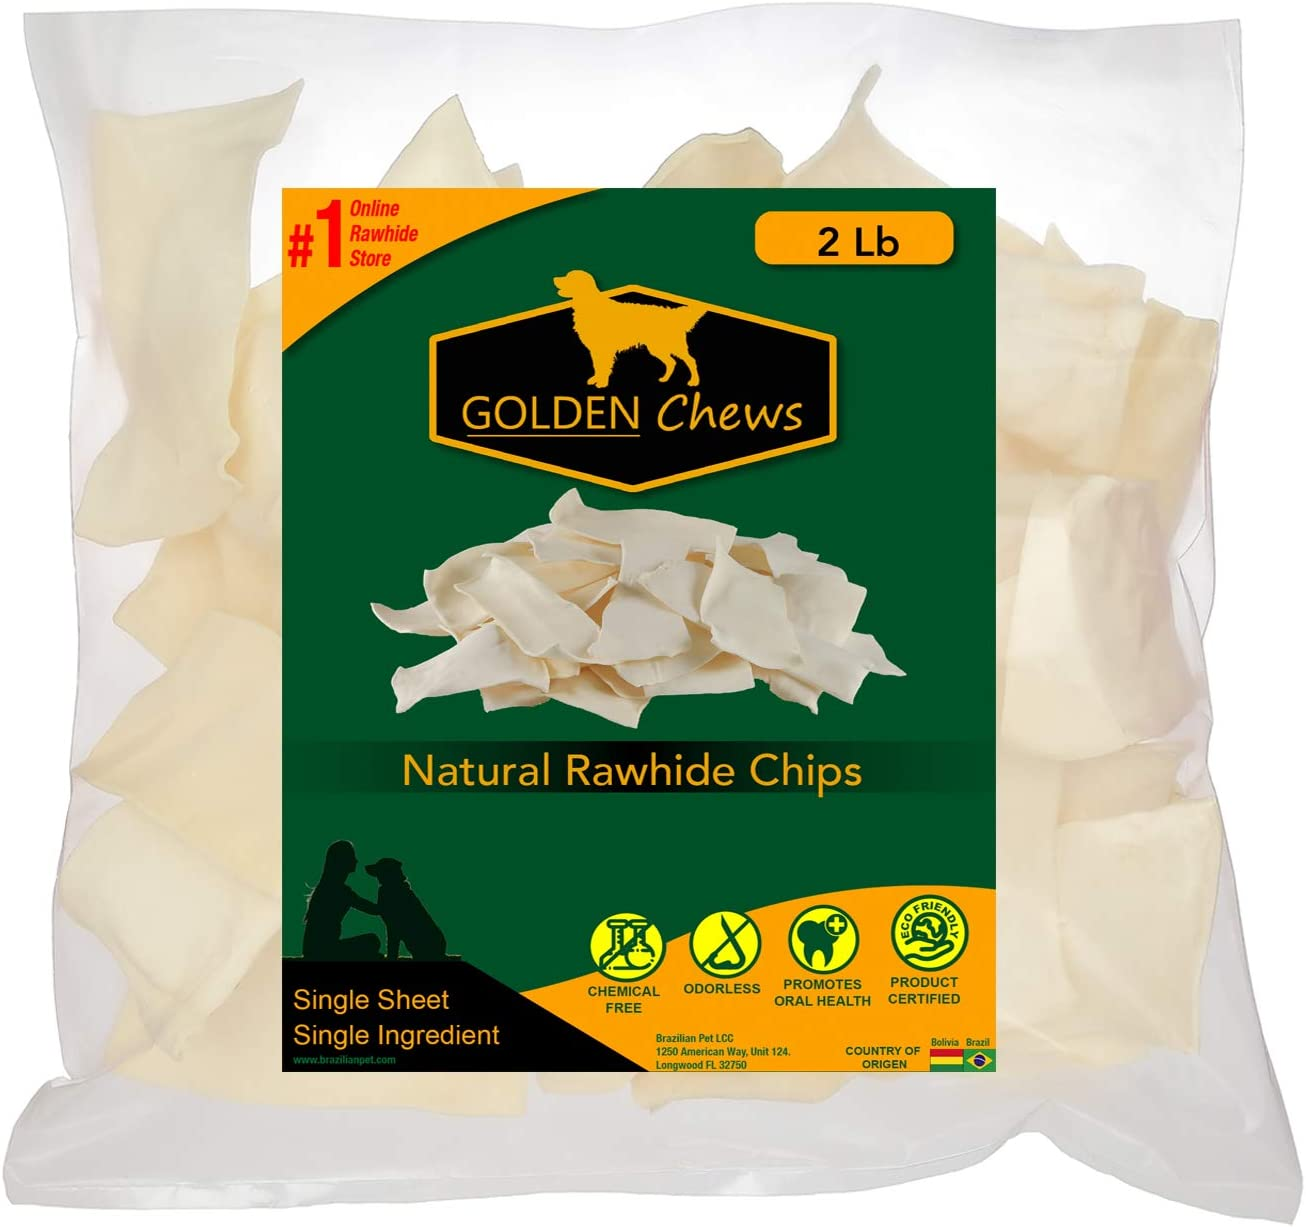 Golden Chews Natural Rawhide Chips Premium Long-Lasting Dog Treats with Thick Cut Beef Hides